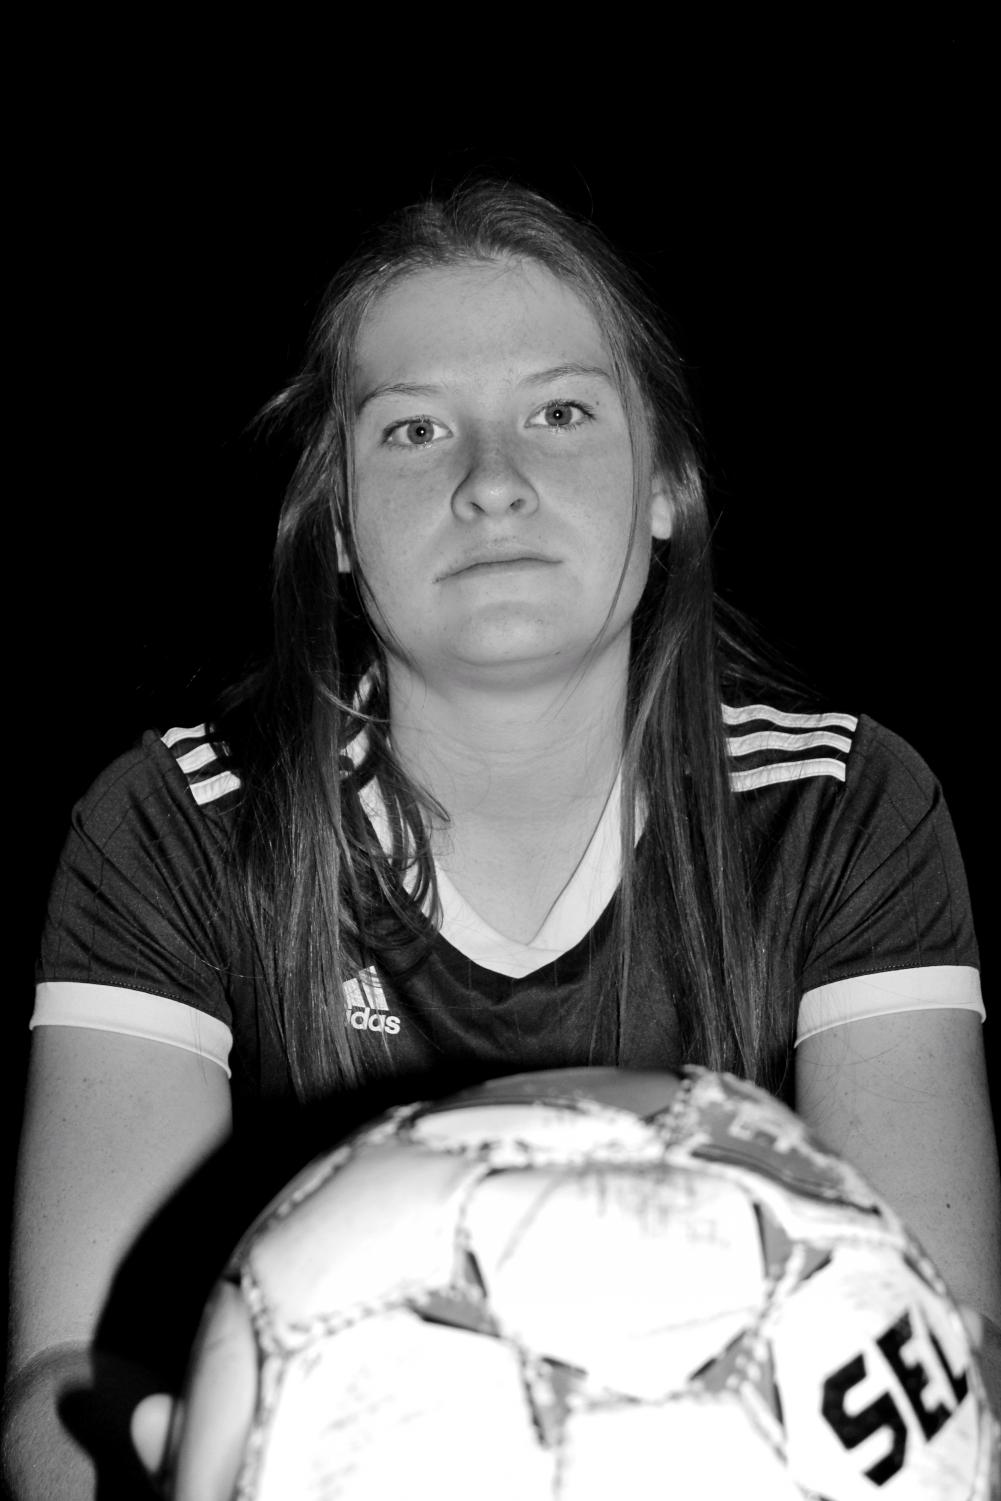 Sienknecht+is+also+a+Varsity+member+on+MSHS%27s+basketball+team.+As+of+now%2C++she+is+still+deciding+which+sport+she+will+play+in+college.+